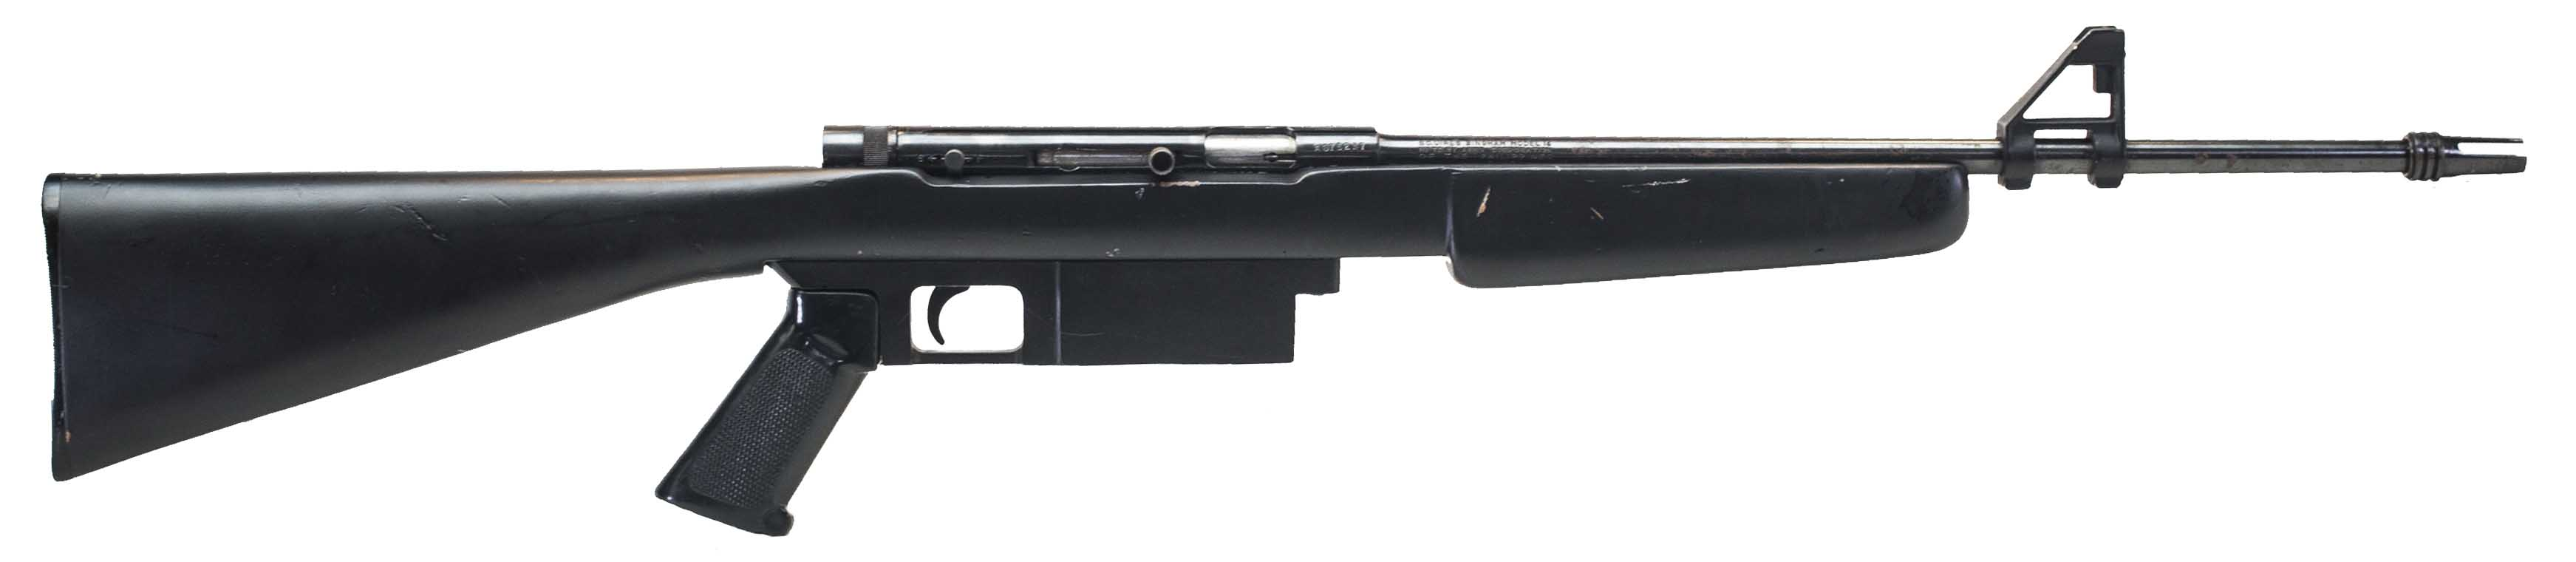 SQUIRES BINGHAM MODEL 16 22LR (Auction ID: 6254131, End Time